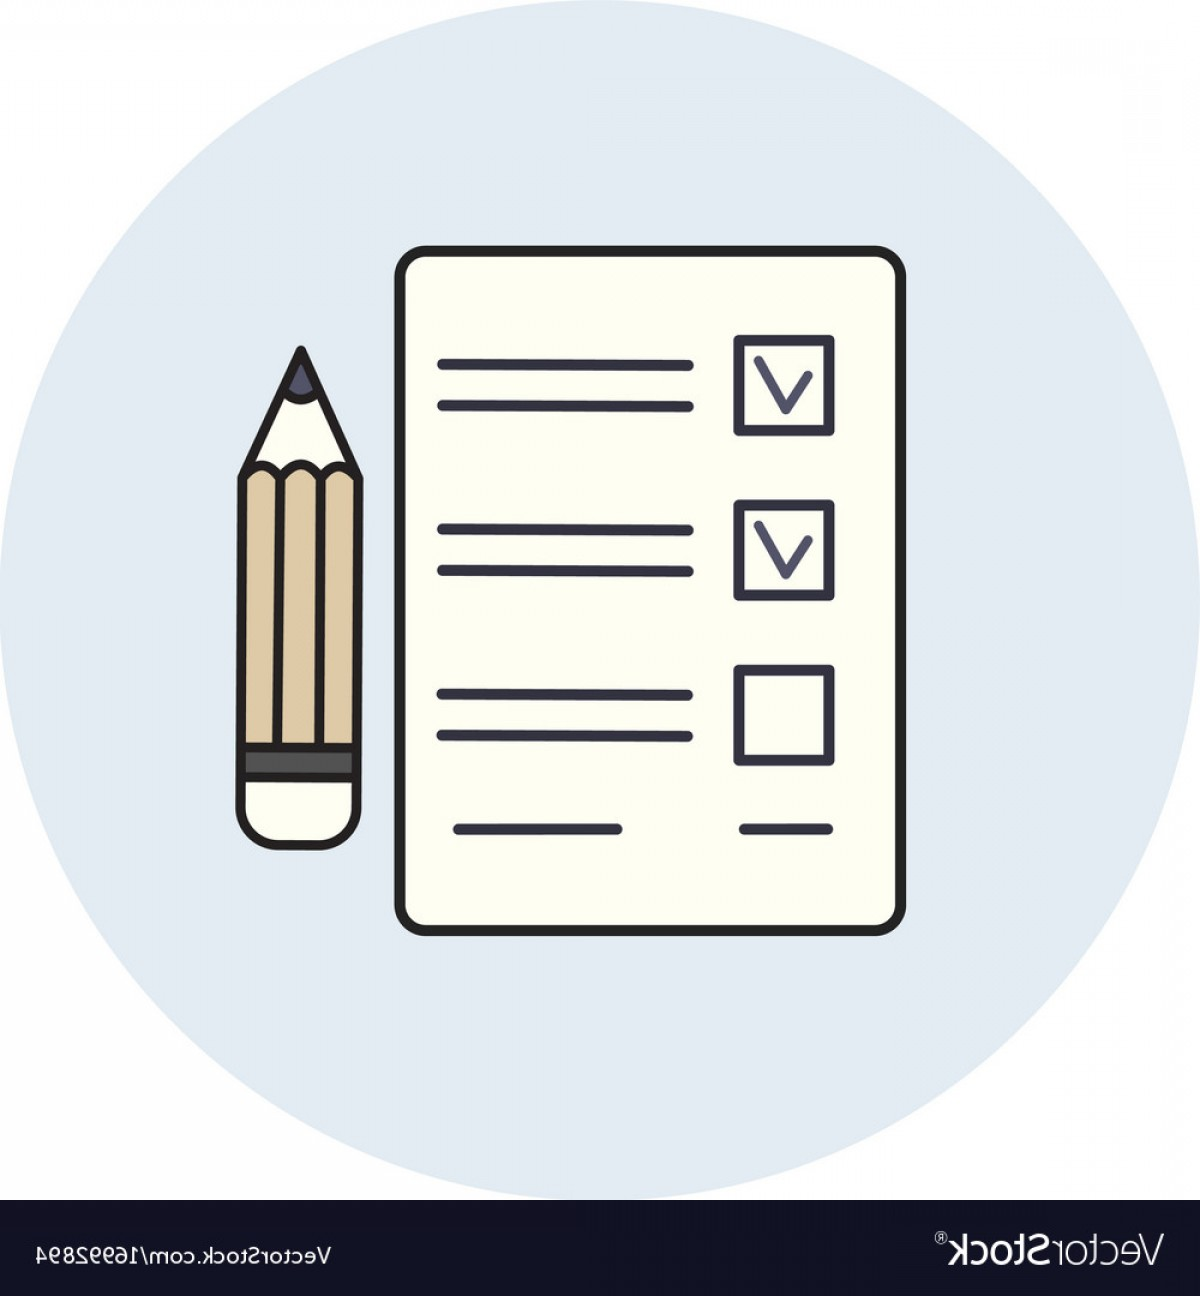 Paper And Pencil Icon Vector: Pencil And Paper Icon Check List Exam Test Vector